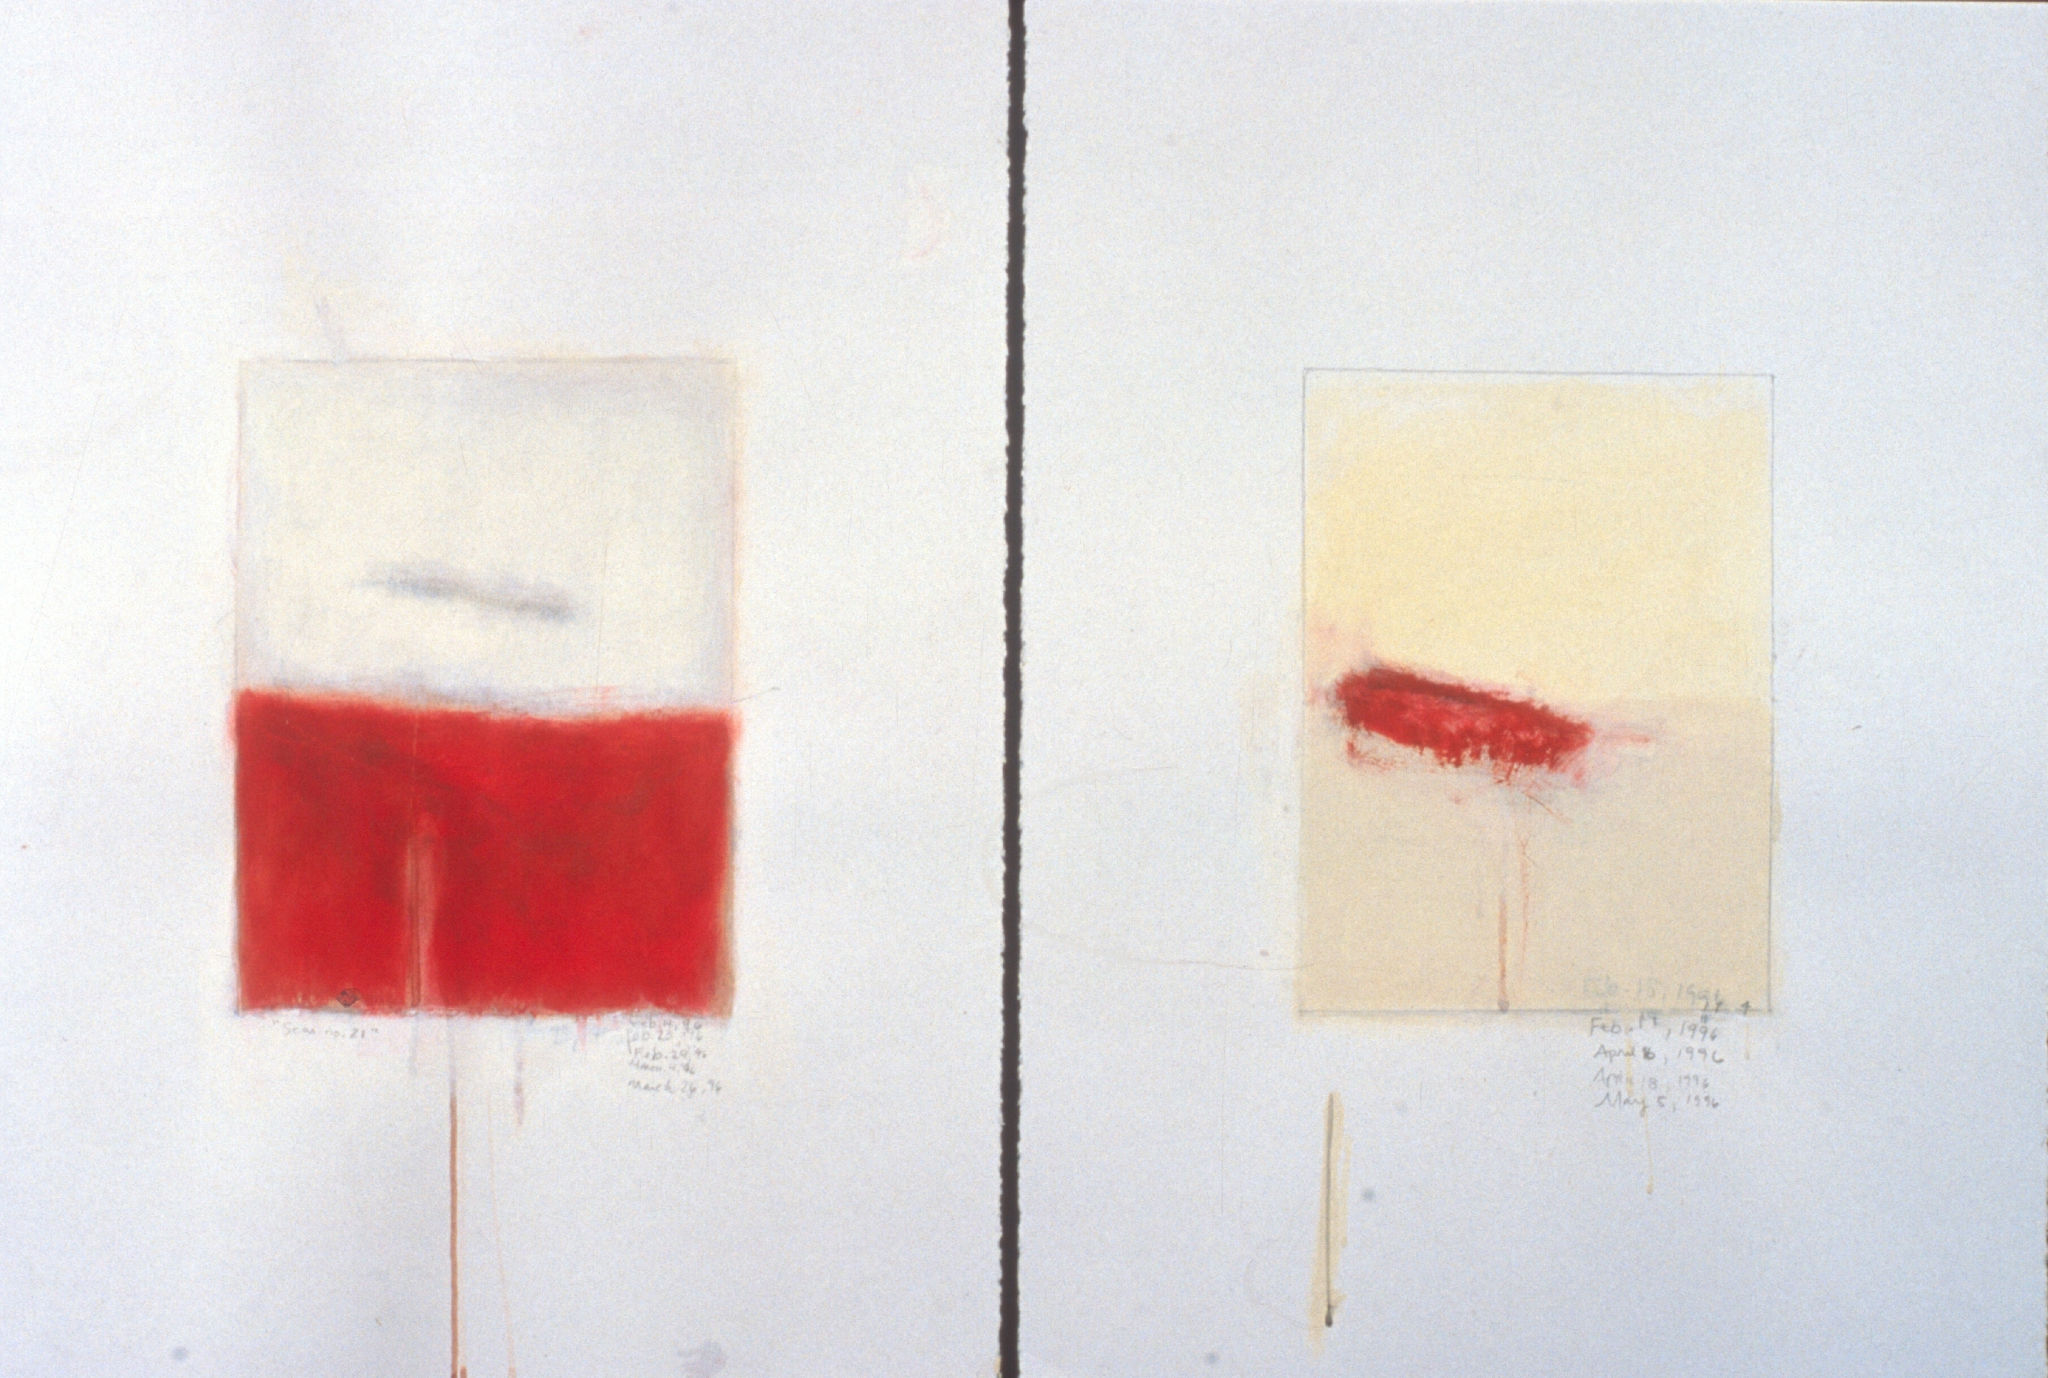 Scar March 6 – May 3 1996 and Scar Feb. 13 – May 30 by Antonietta Grassi.